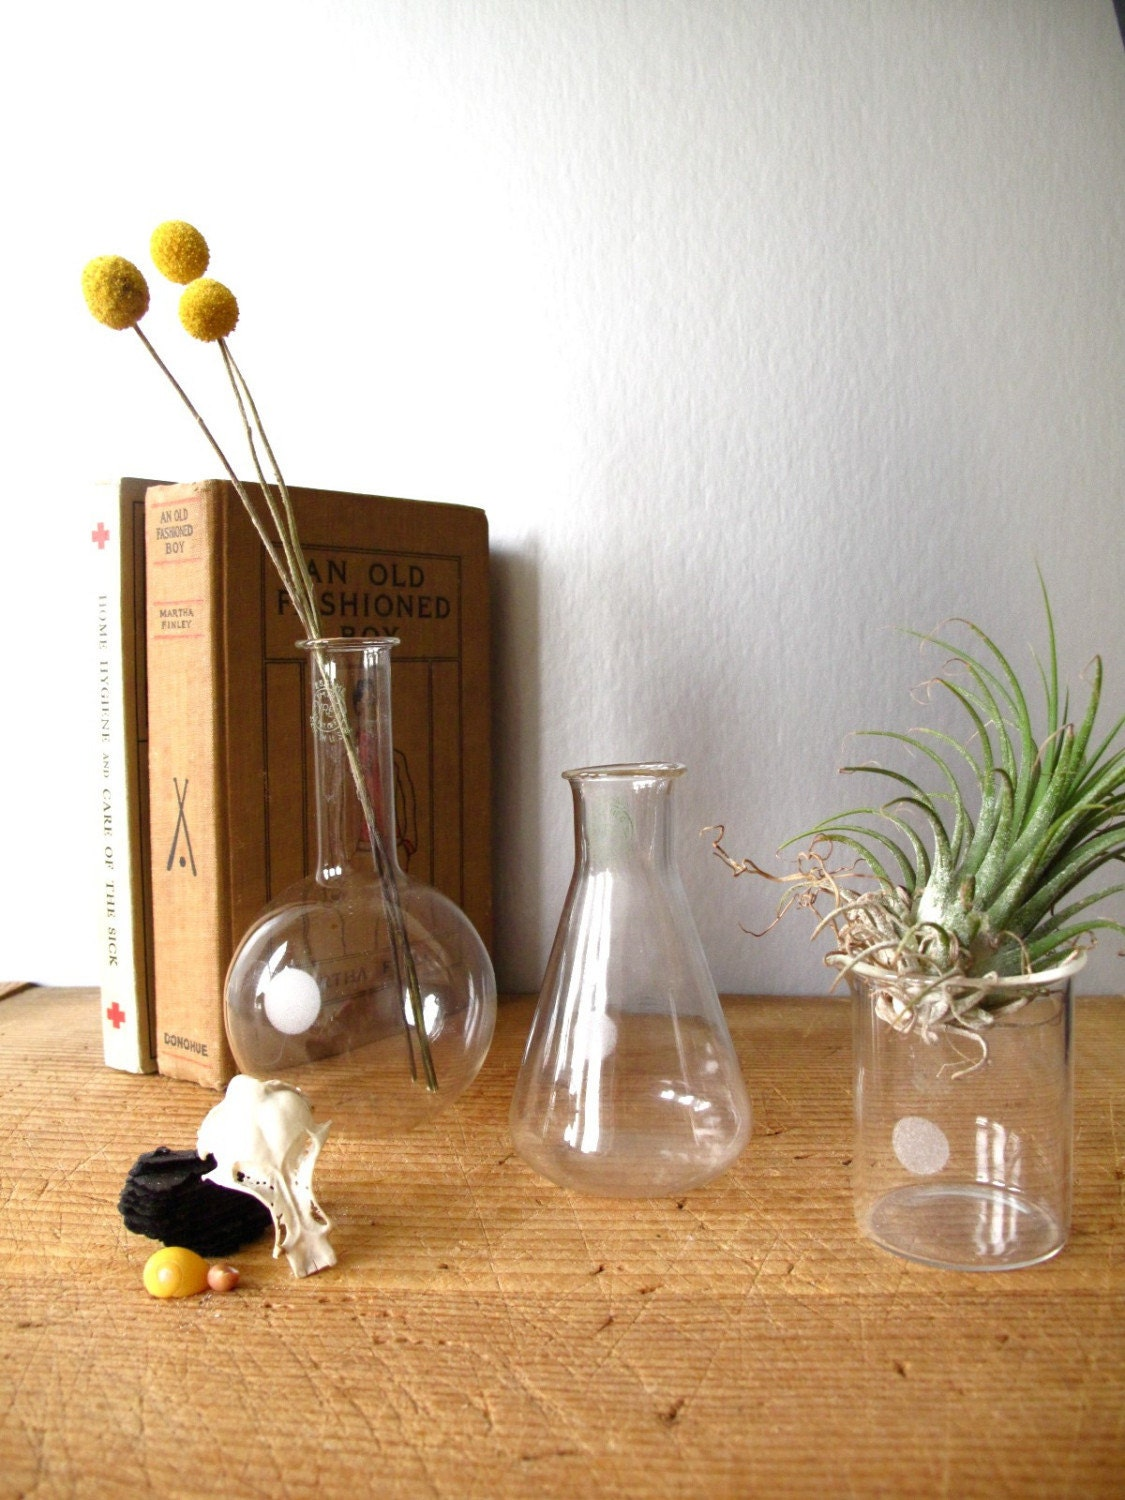 into the mix - 3 vintage pyrex beakers